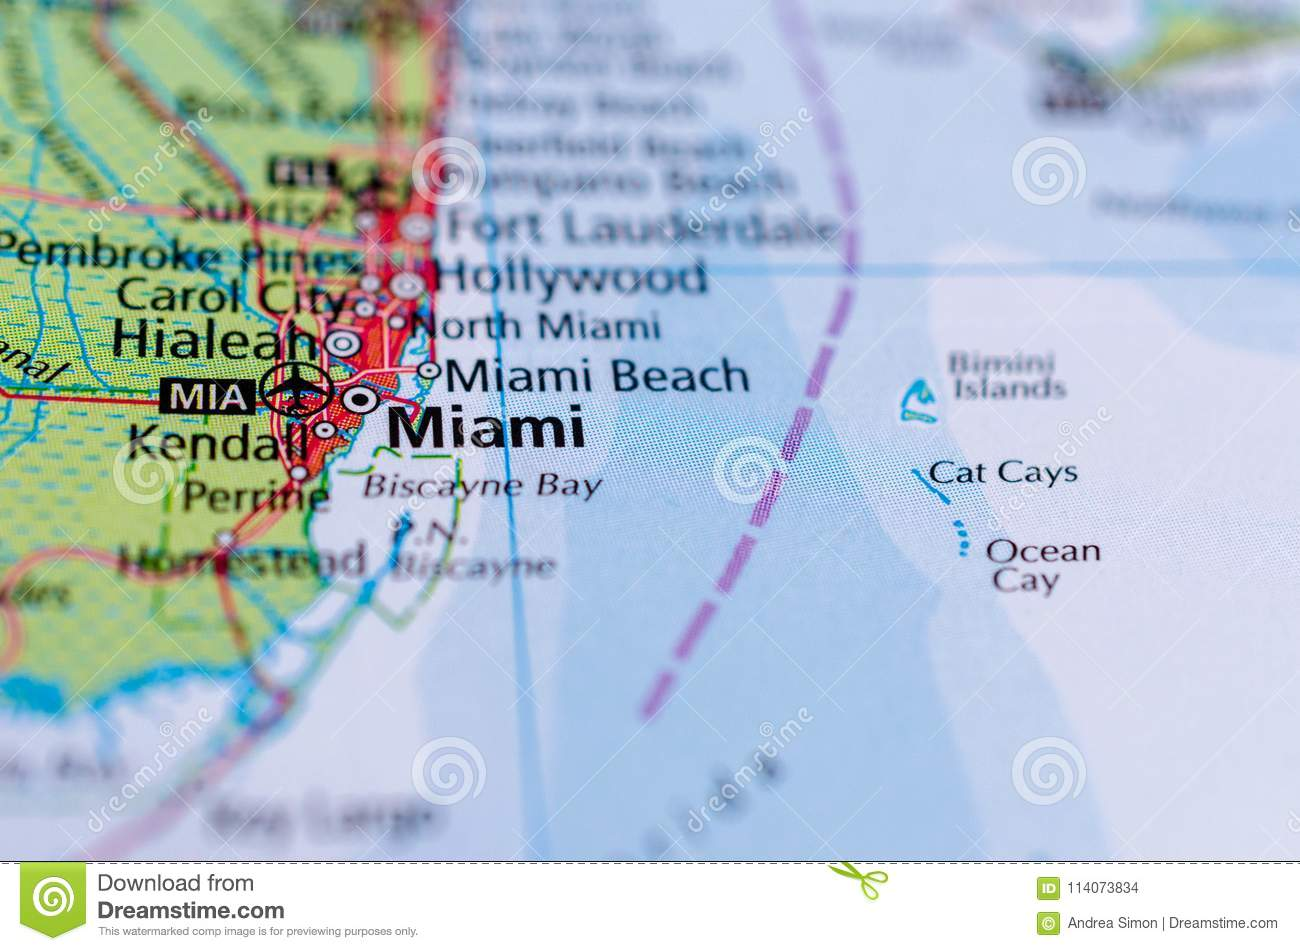 South Florida Map By City.Miami On Map Stock Photo Image Of Paper Journey Region 114073834